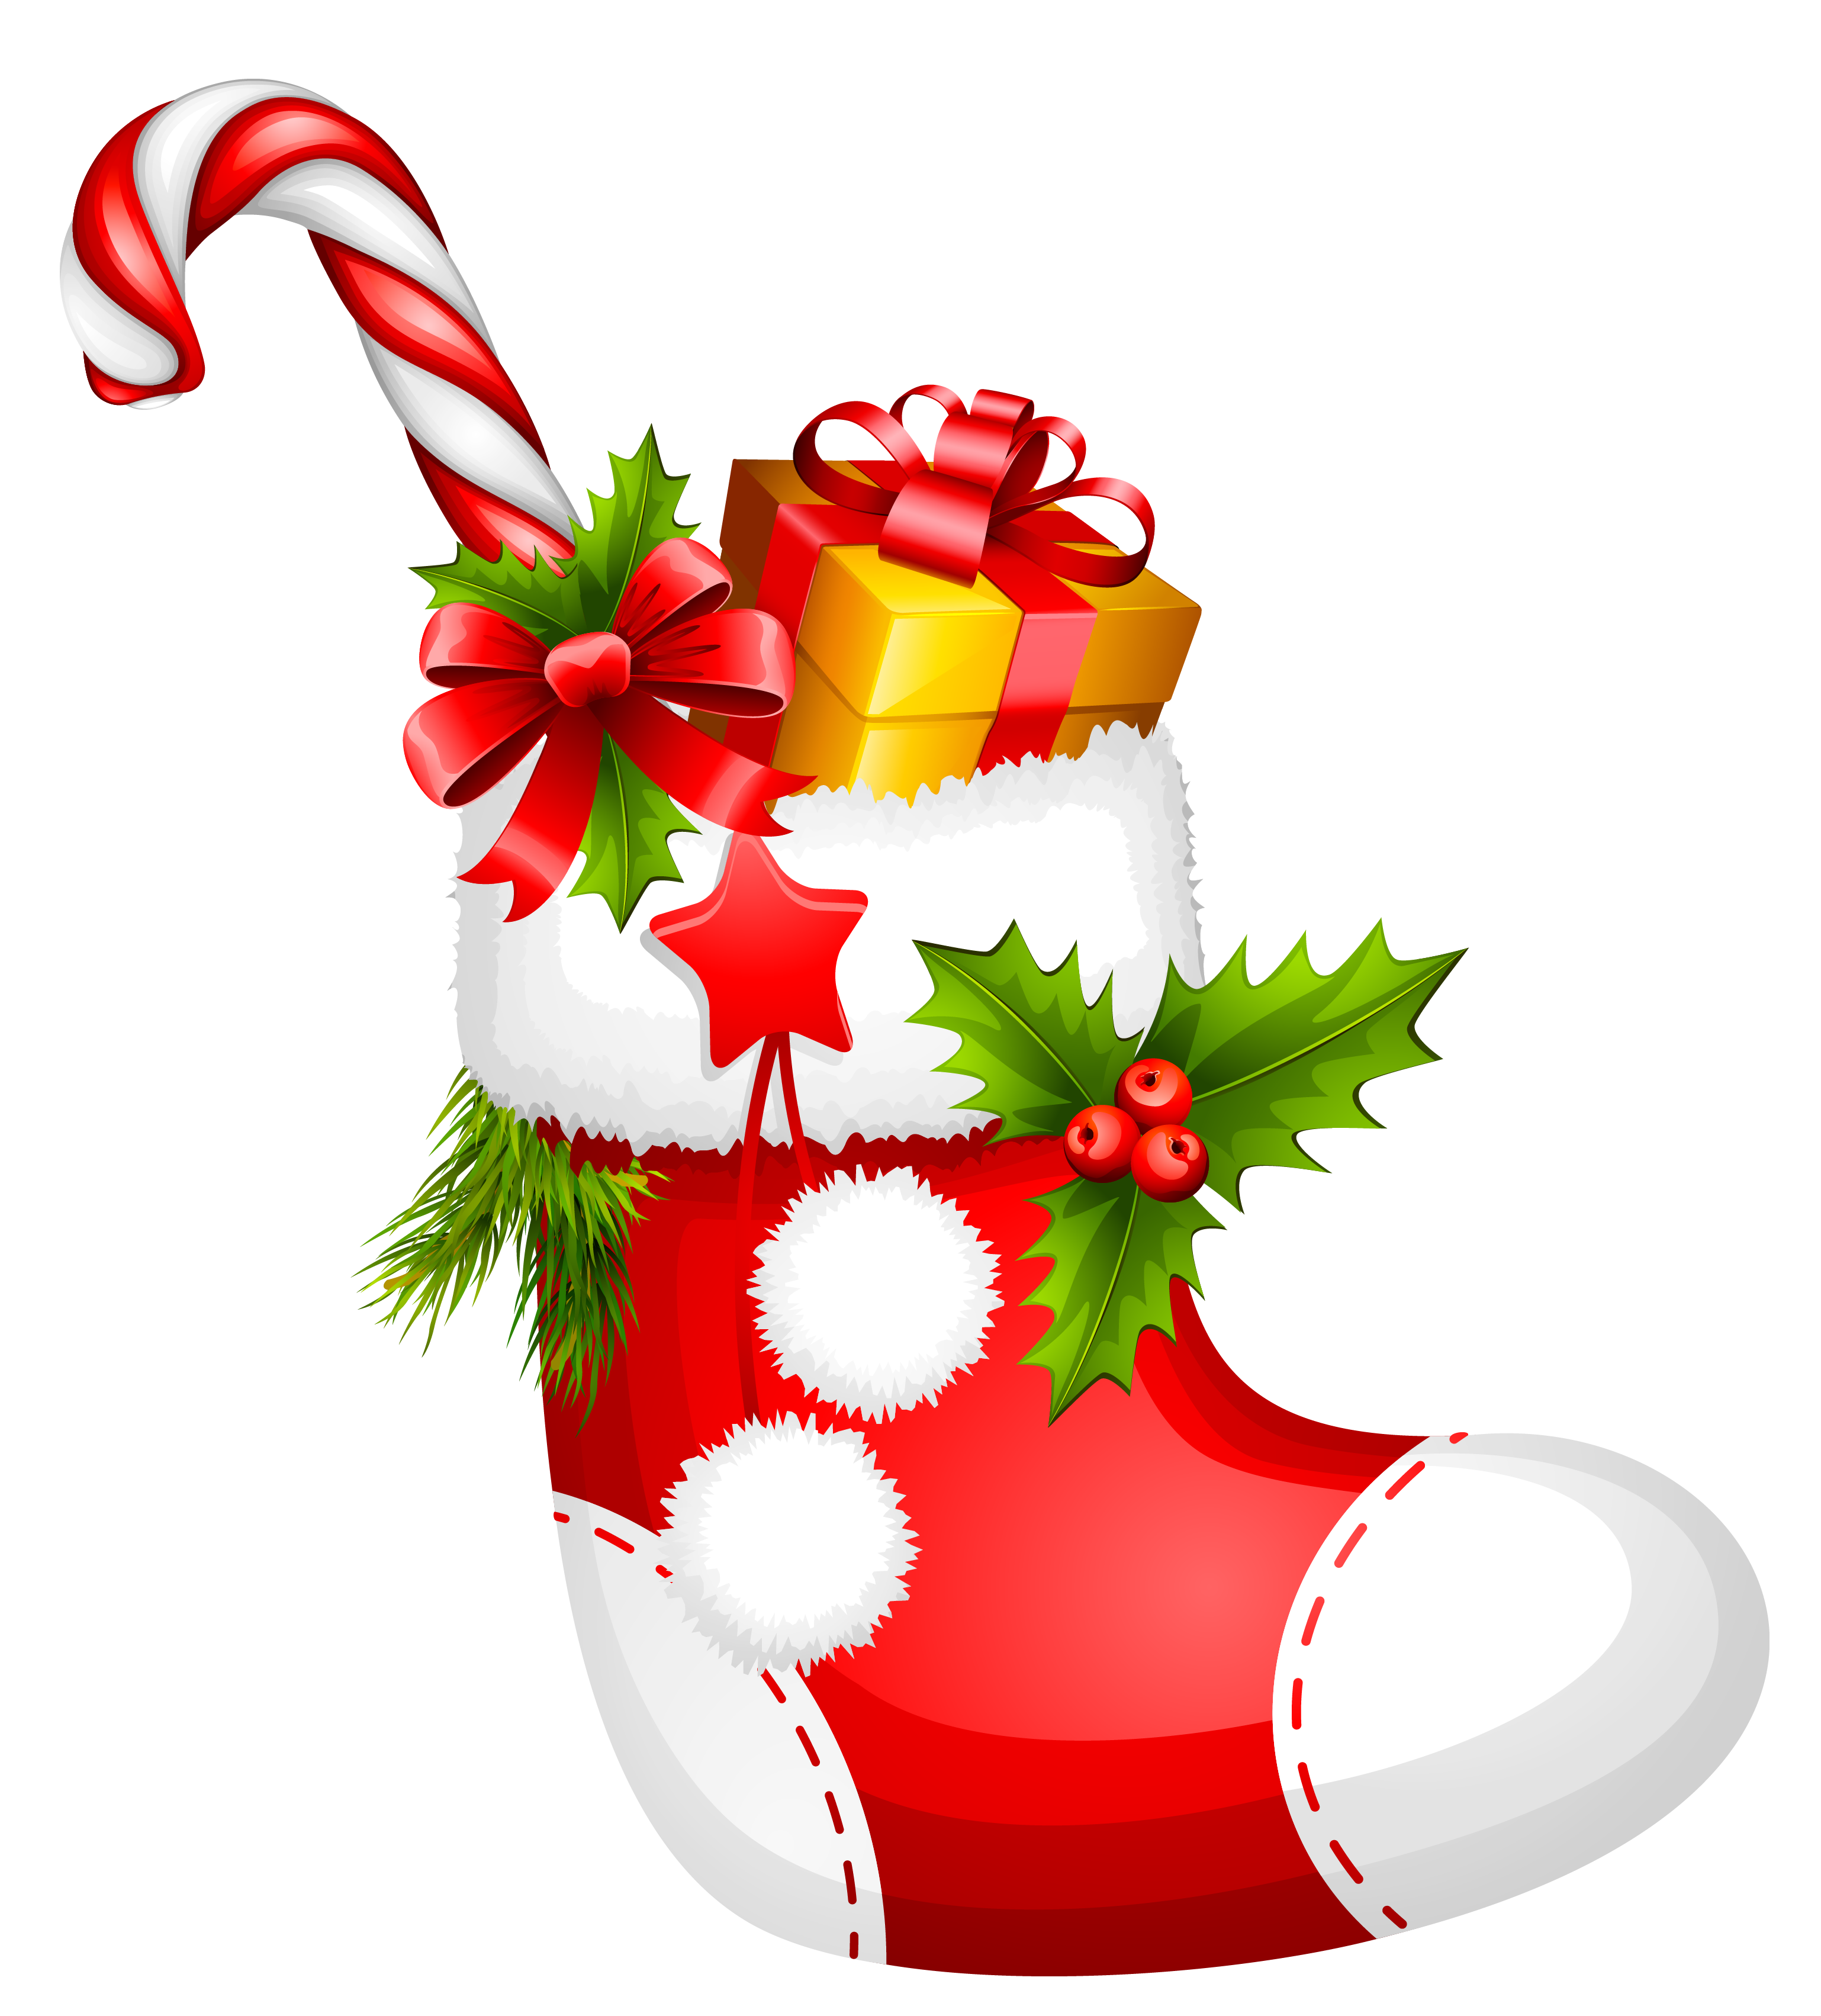 Christmas stocking with candy. Socks clipart santa claus clip freeuse